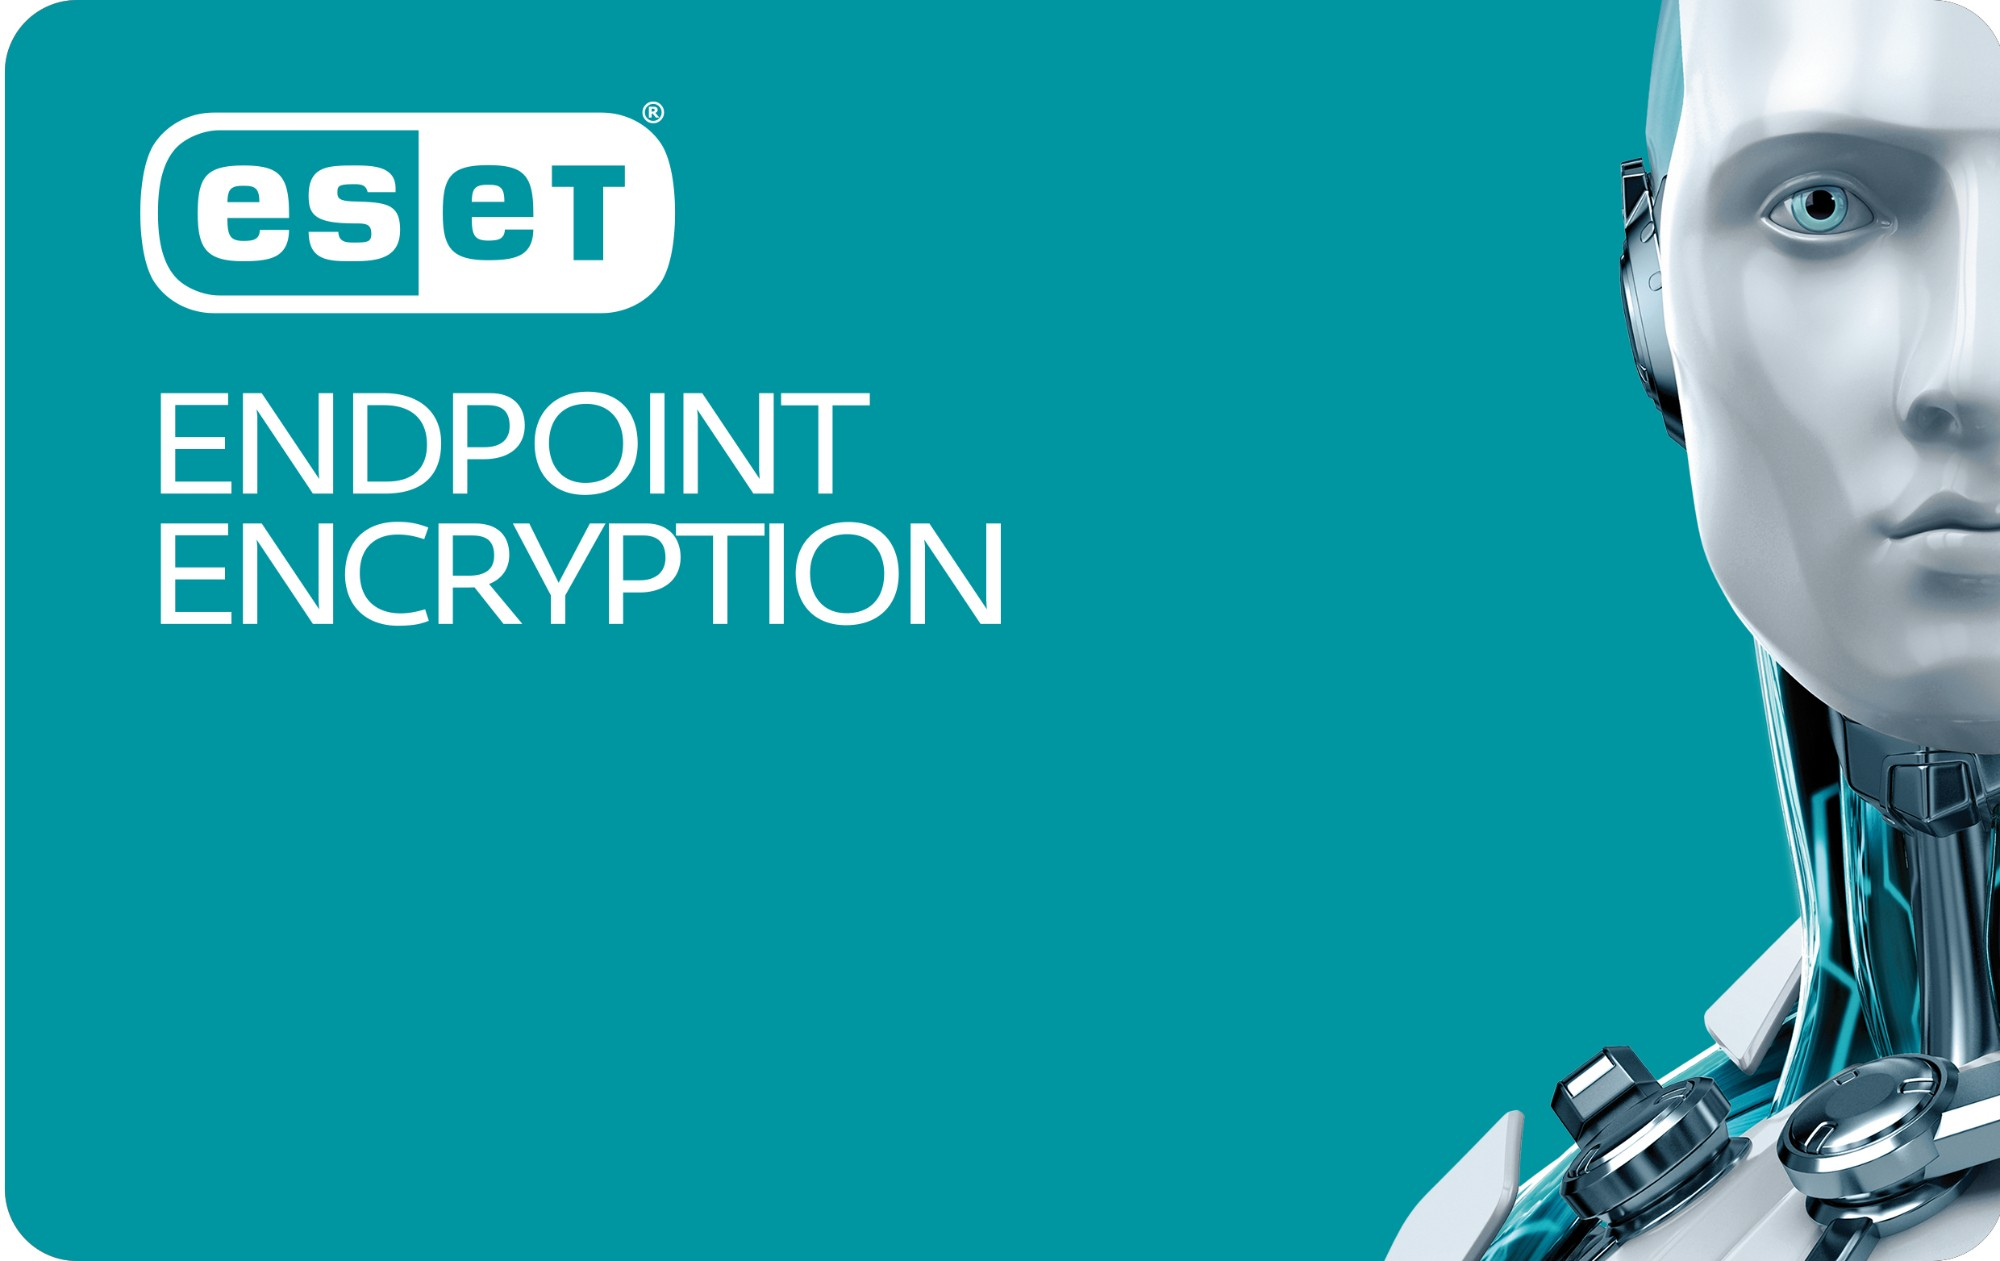 ESET Endpoint Encryption Pro 50 - 99 User Education (EDU) license 50 - 99 license(s) 3 year(s)